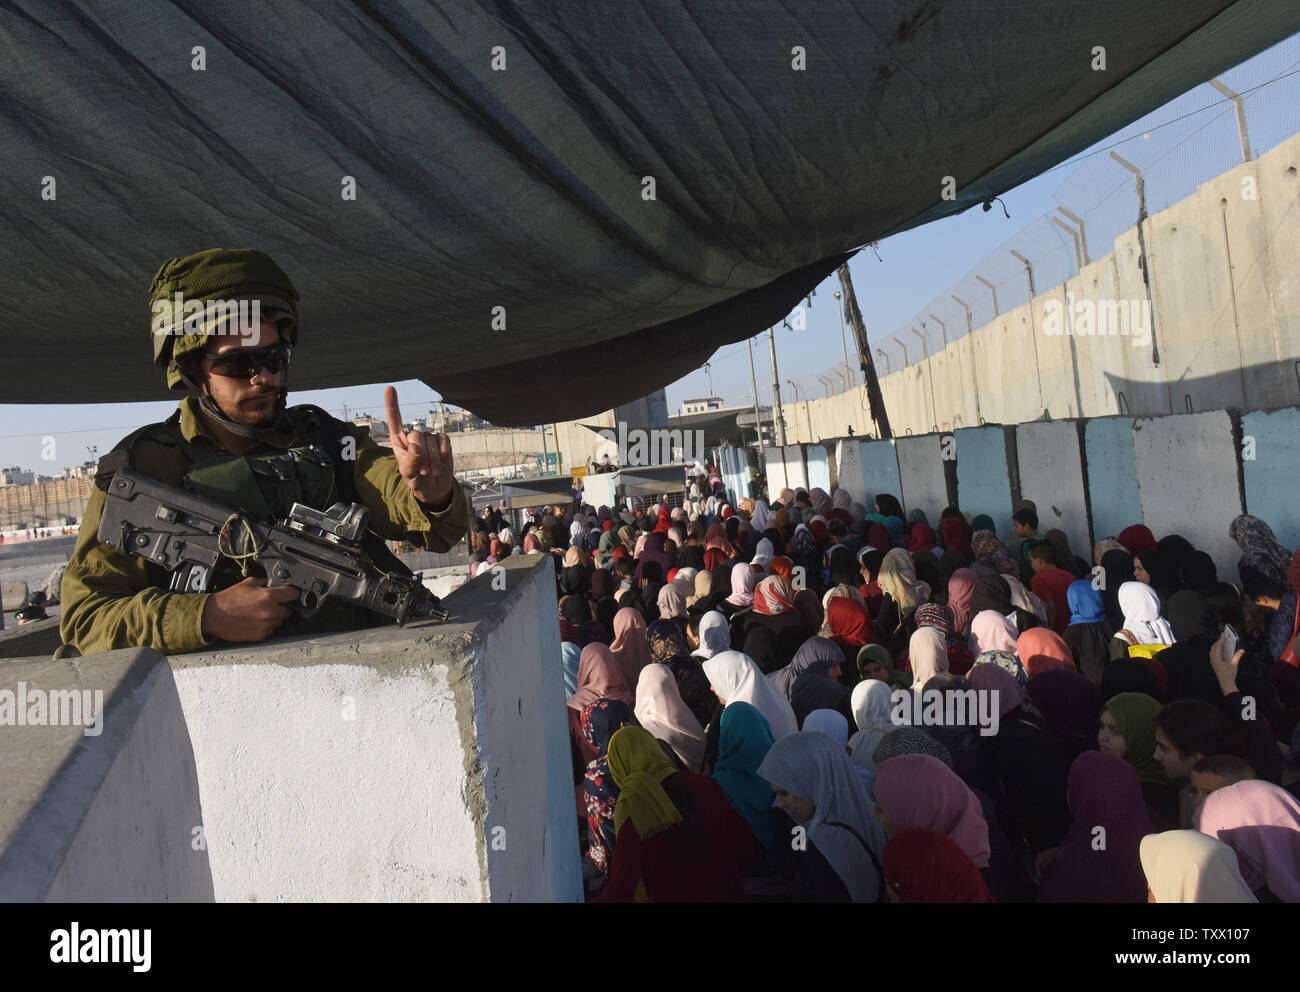 An Israeli soldier motions to Palestinians waiting to cross the Qalandiya checkpoint, West Bank, from Ramallah to Jerusalem, to pray at the Al-Aqsa Mosque on the last Friday of the Muslim holy month of Ramadan, June 8, 2018.  Photo by Debbie Hill/UPI - Stock Image